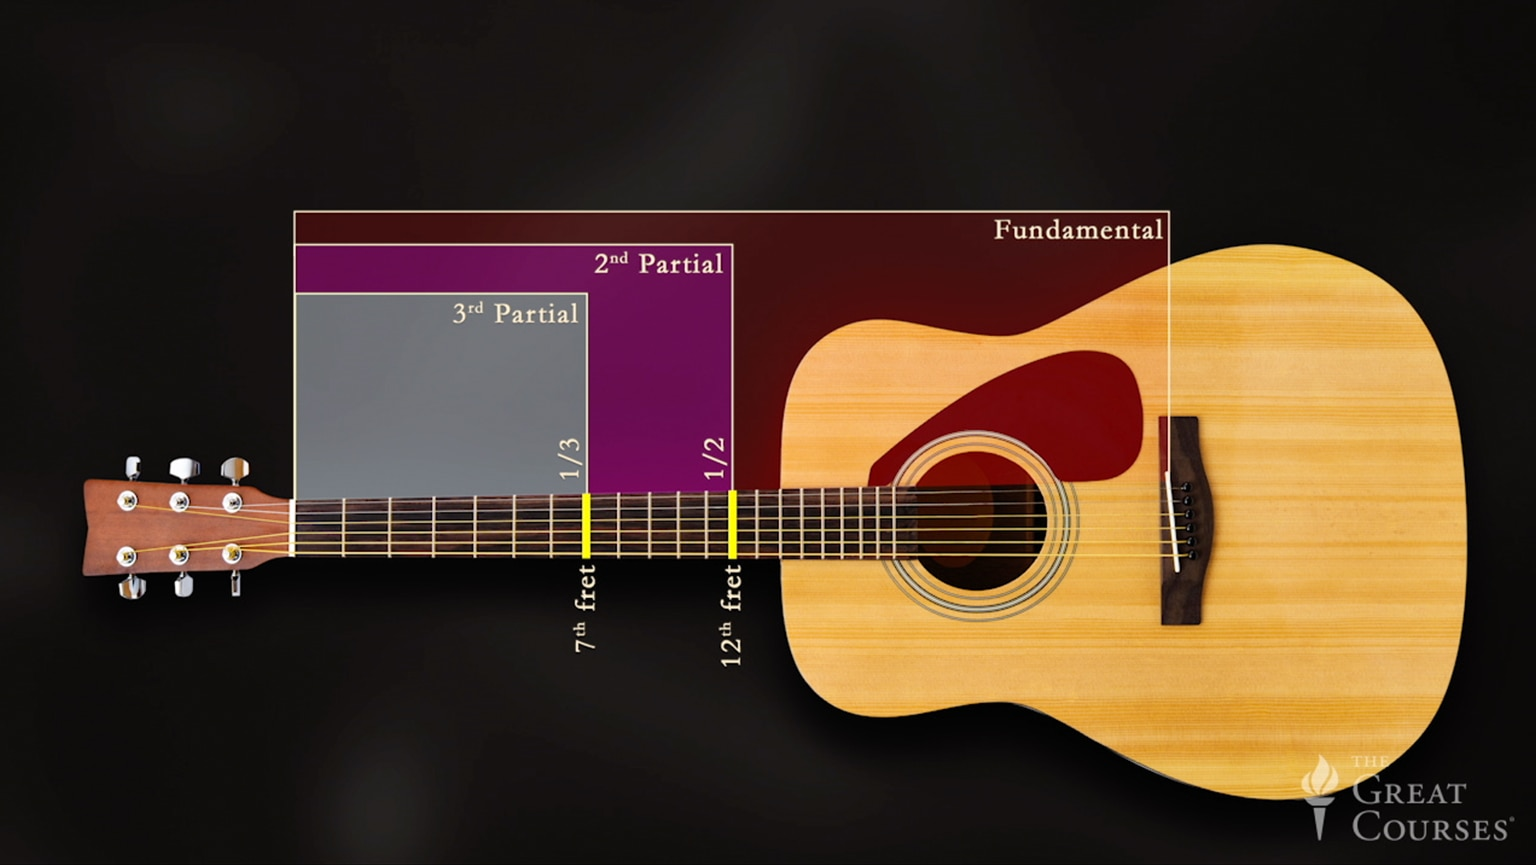 Learning To Play Guitar Chords Scales And Solos The Great